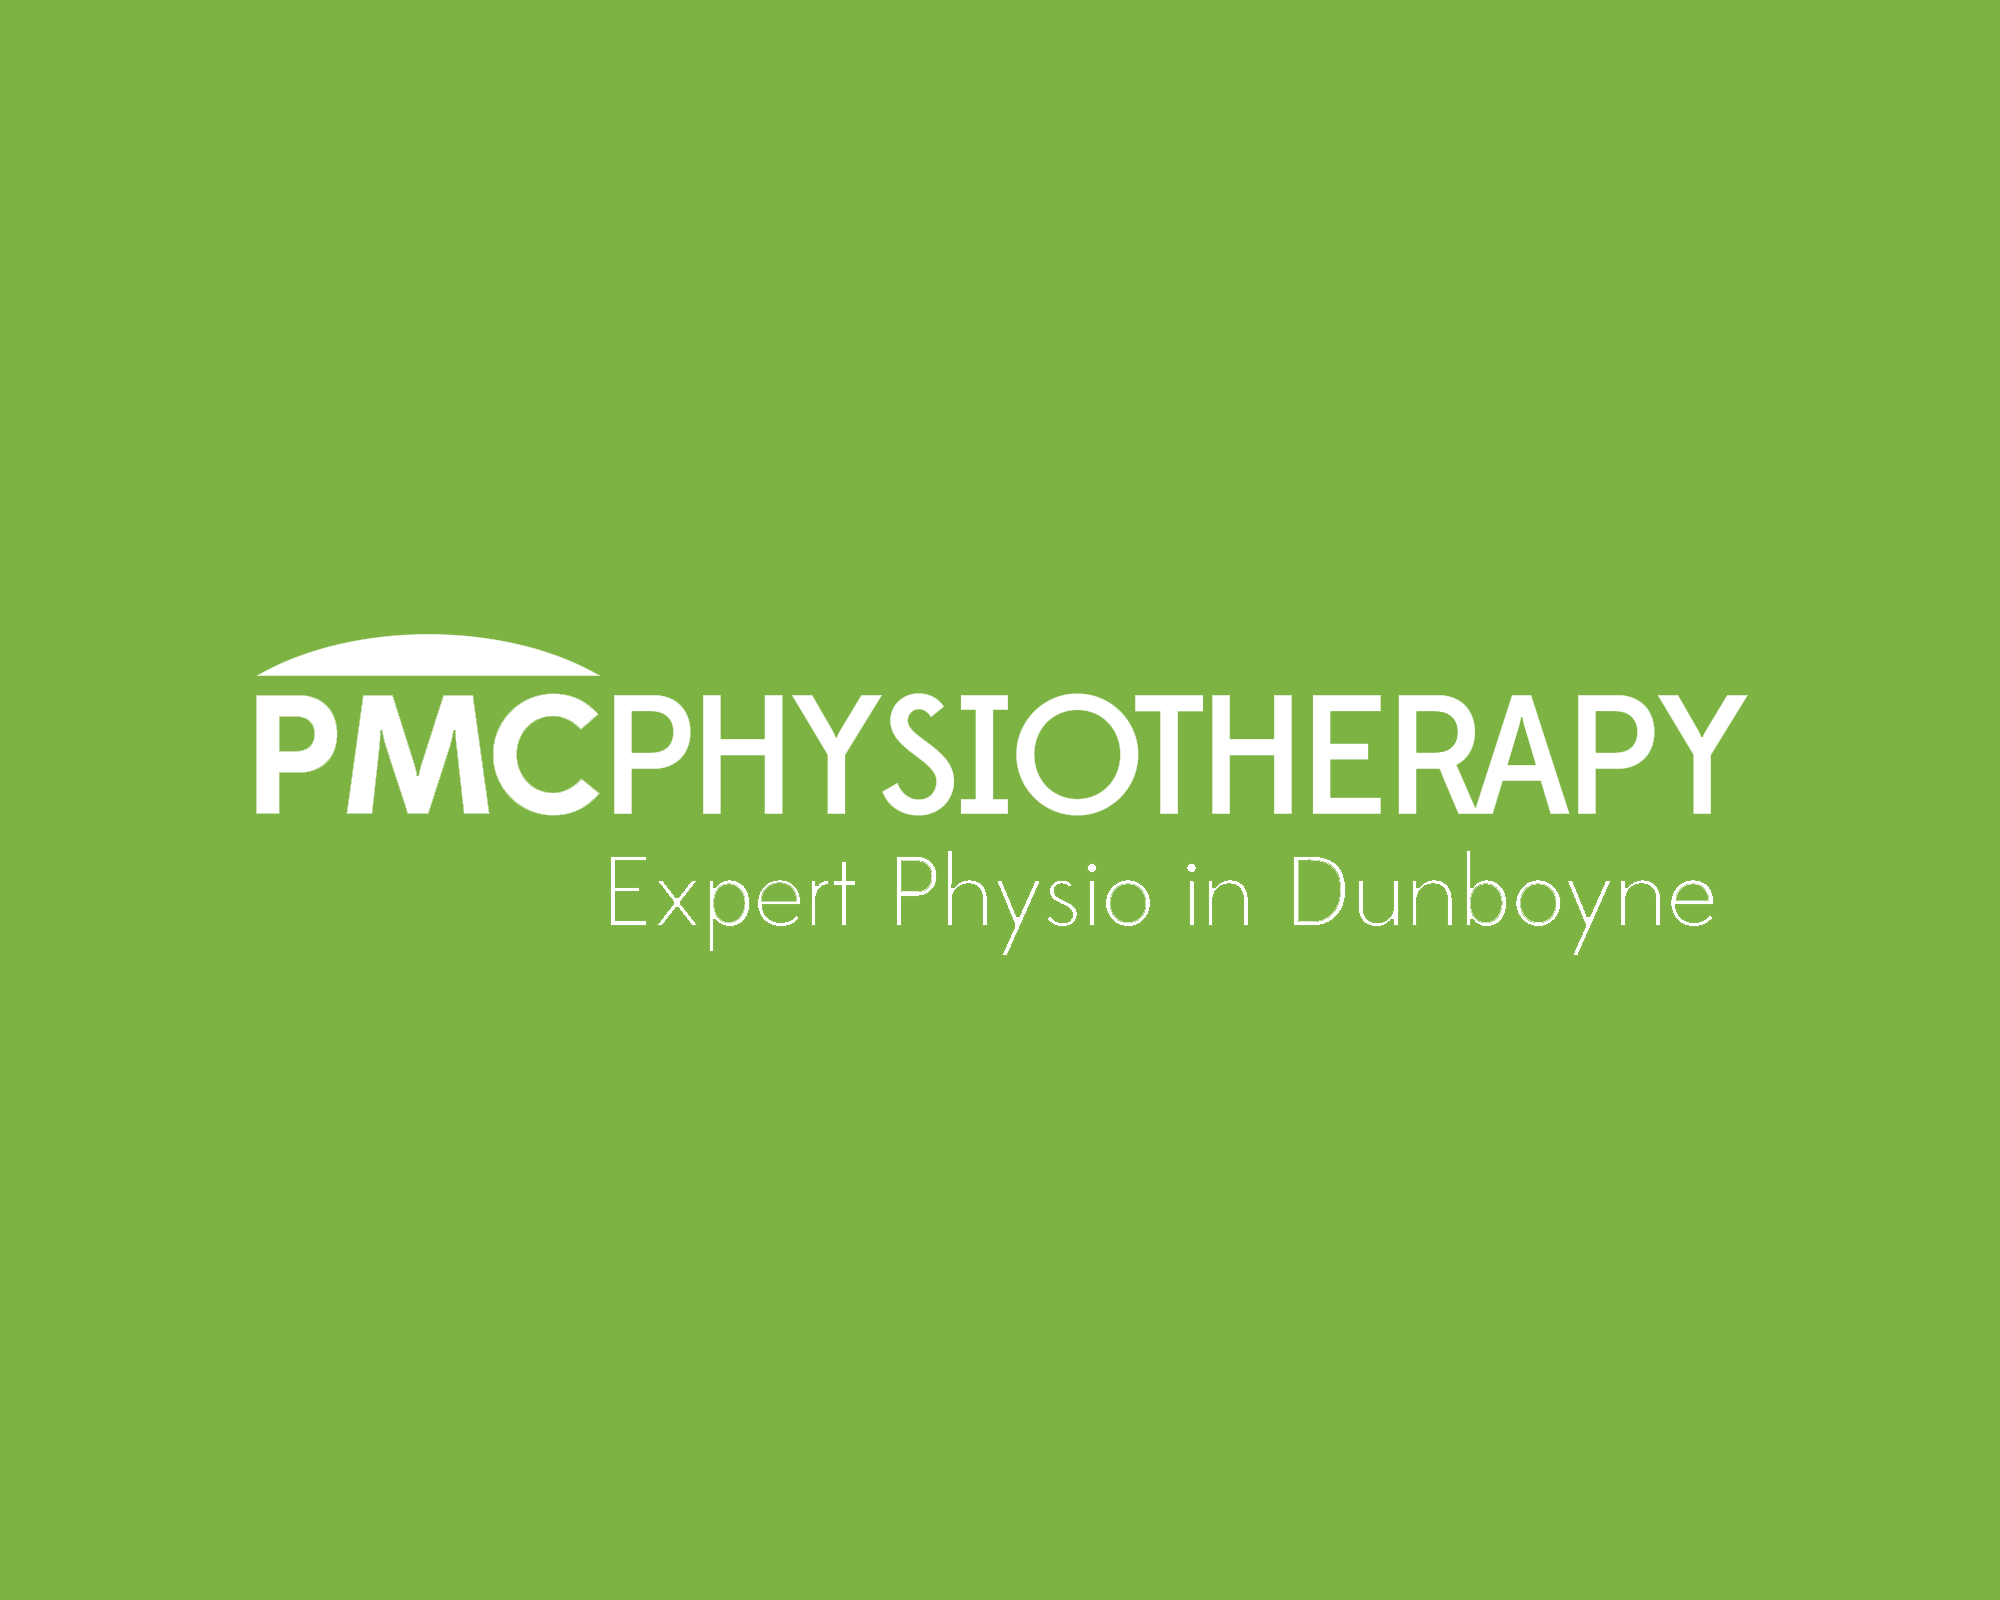 pmc physiotherapy Logo